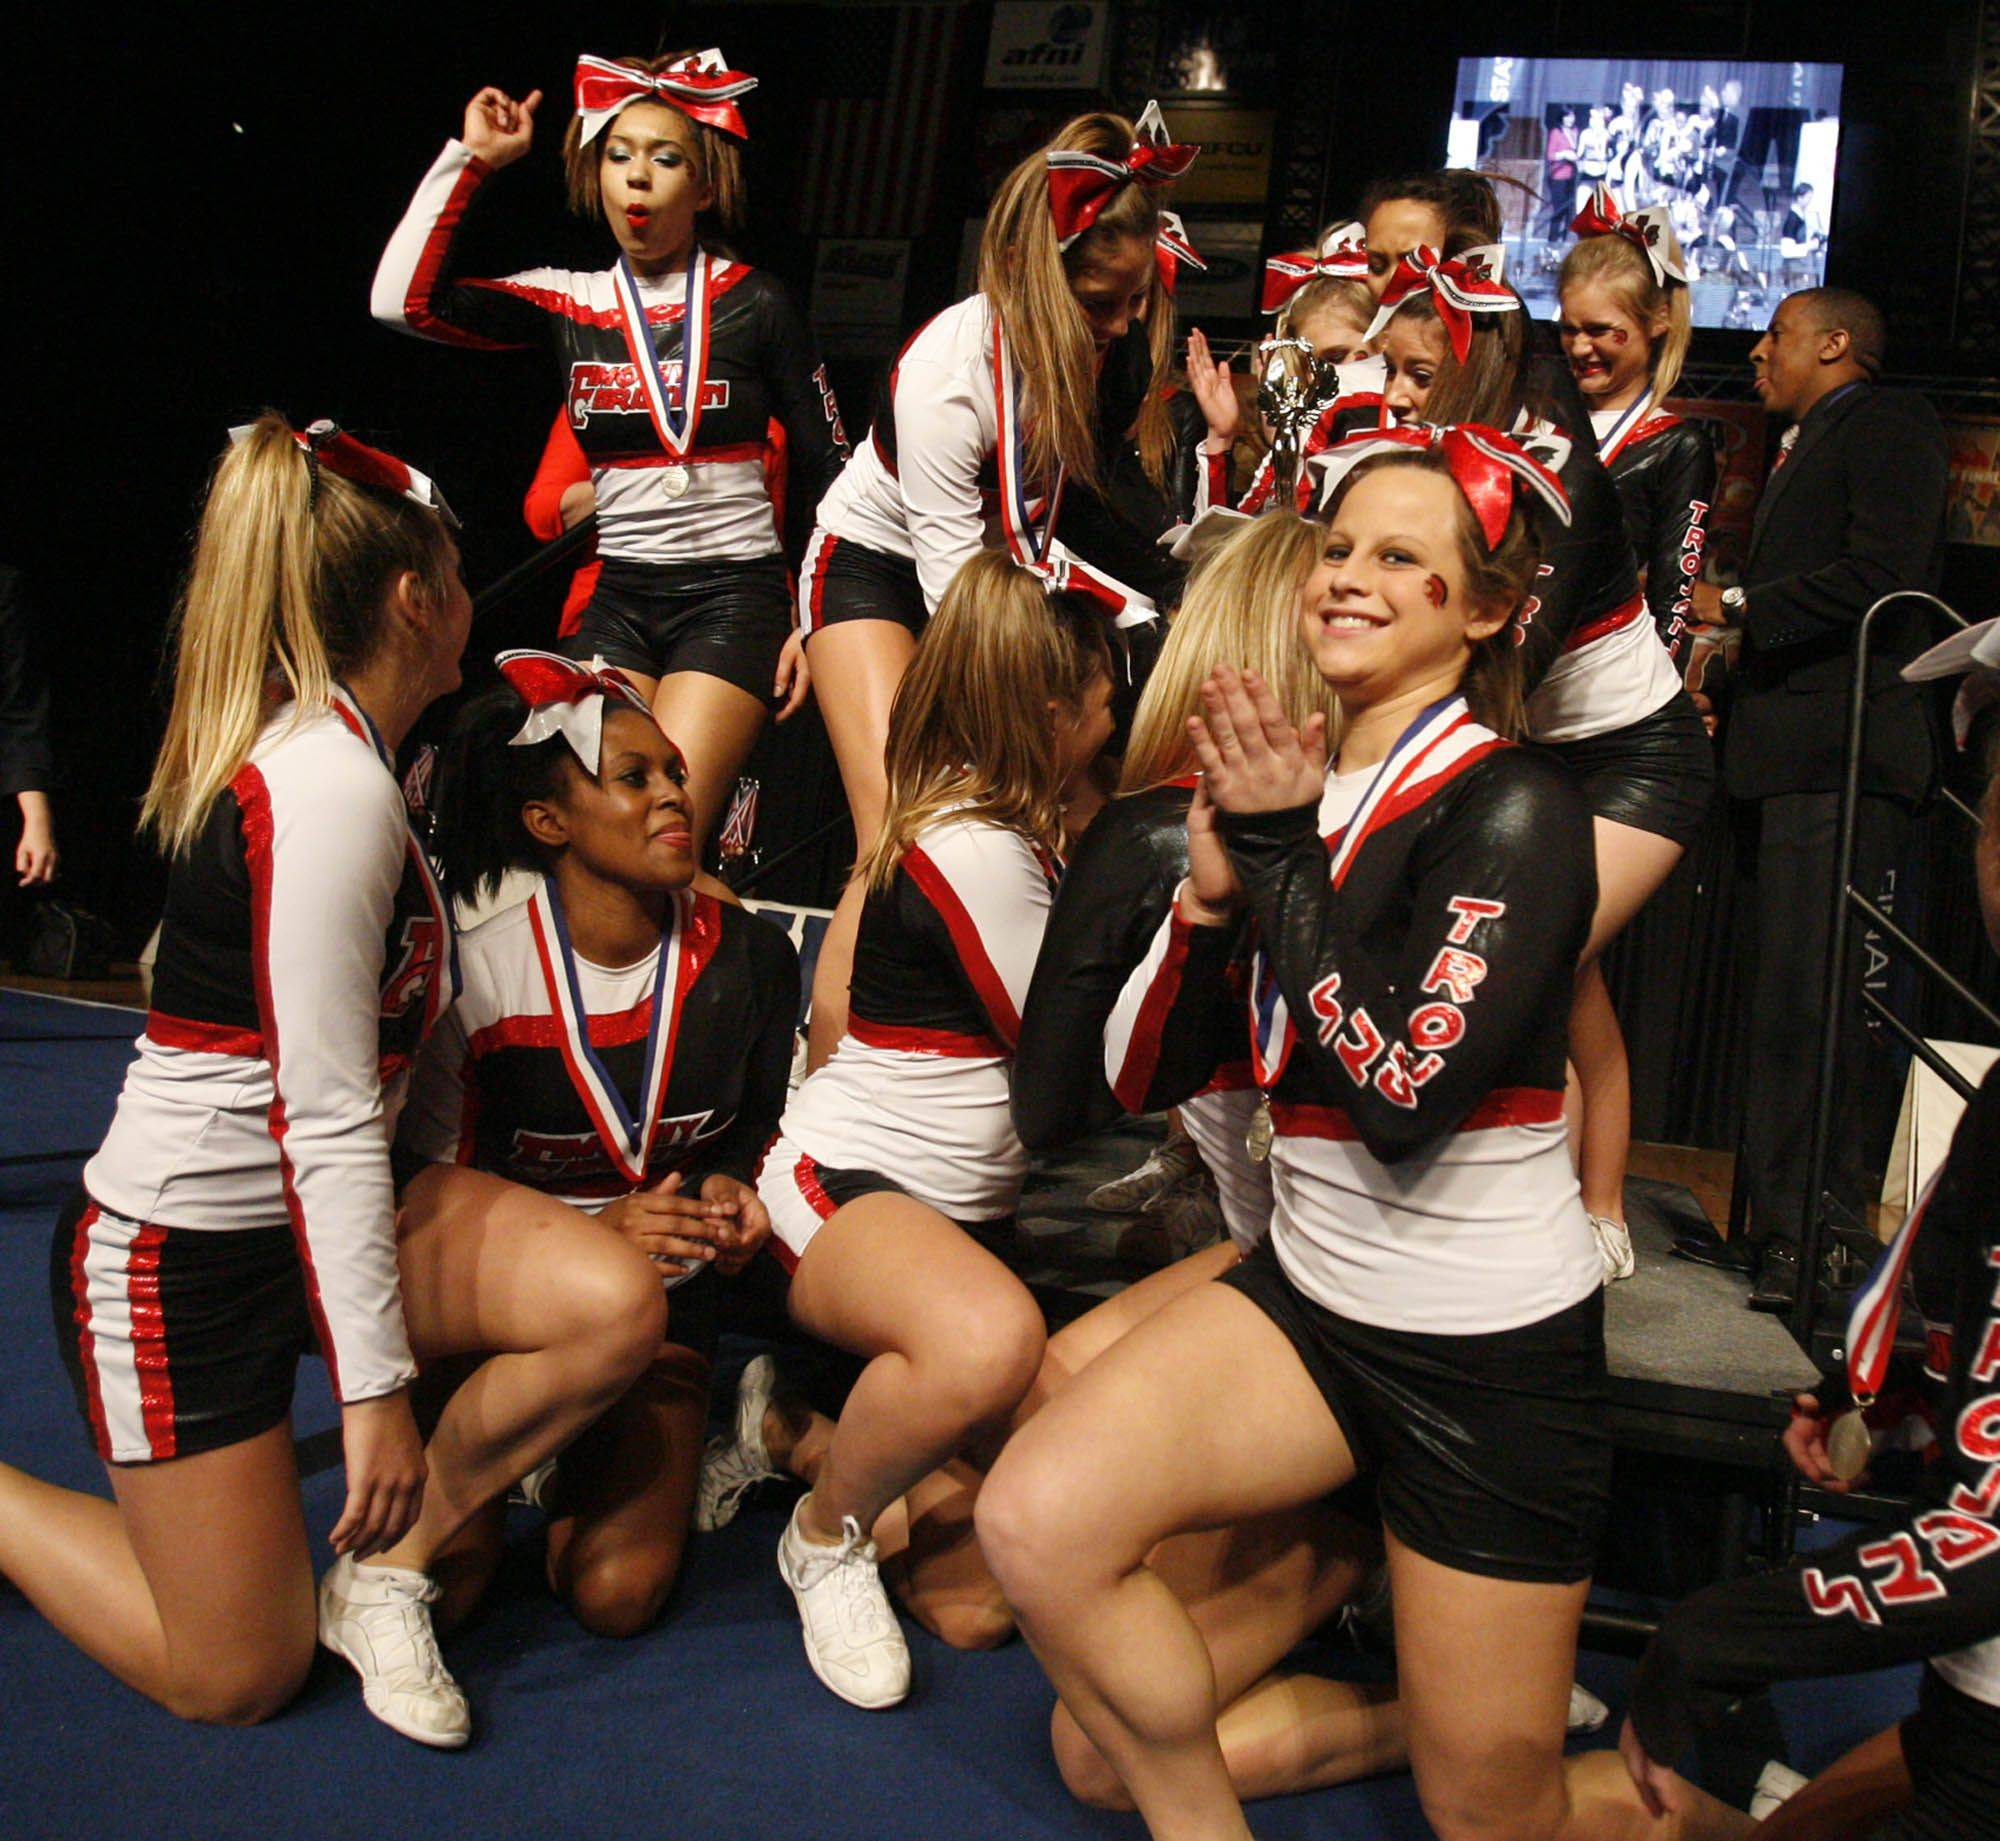 Timothy Christian celebrate taking second place at IHSA cheerleading state finals for the small school category at U.S. Cellular Coliseum in Bloomington on Saturday.